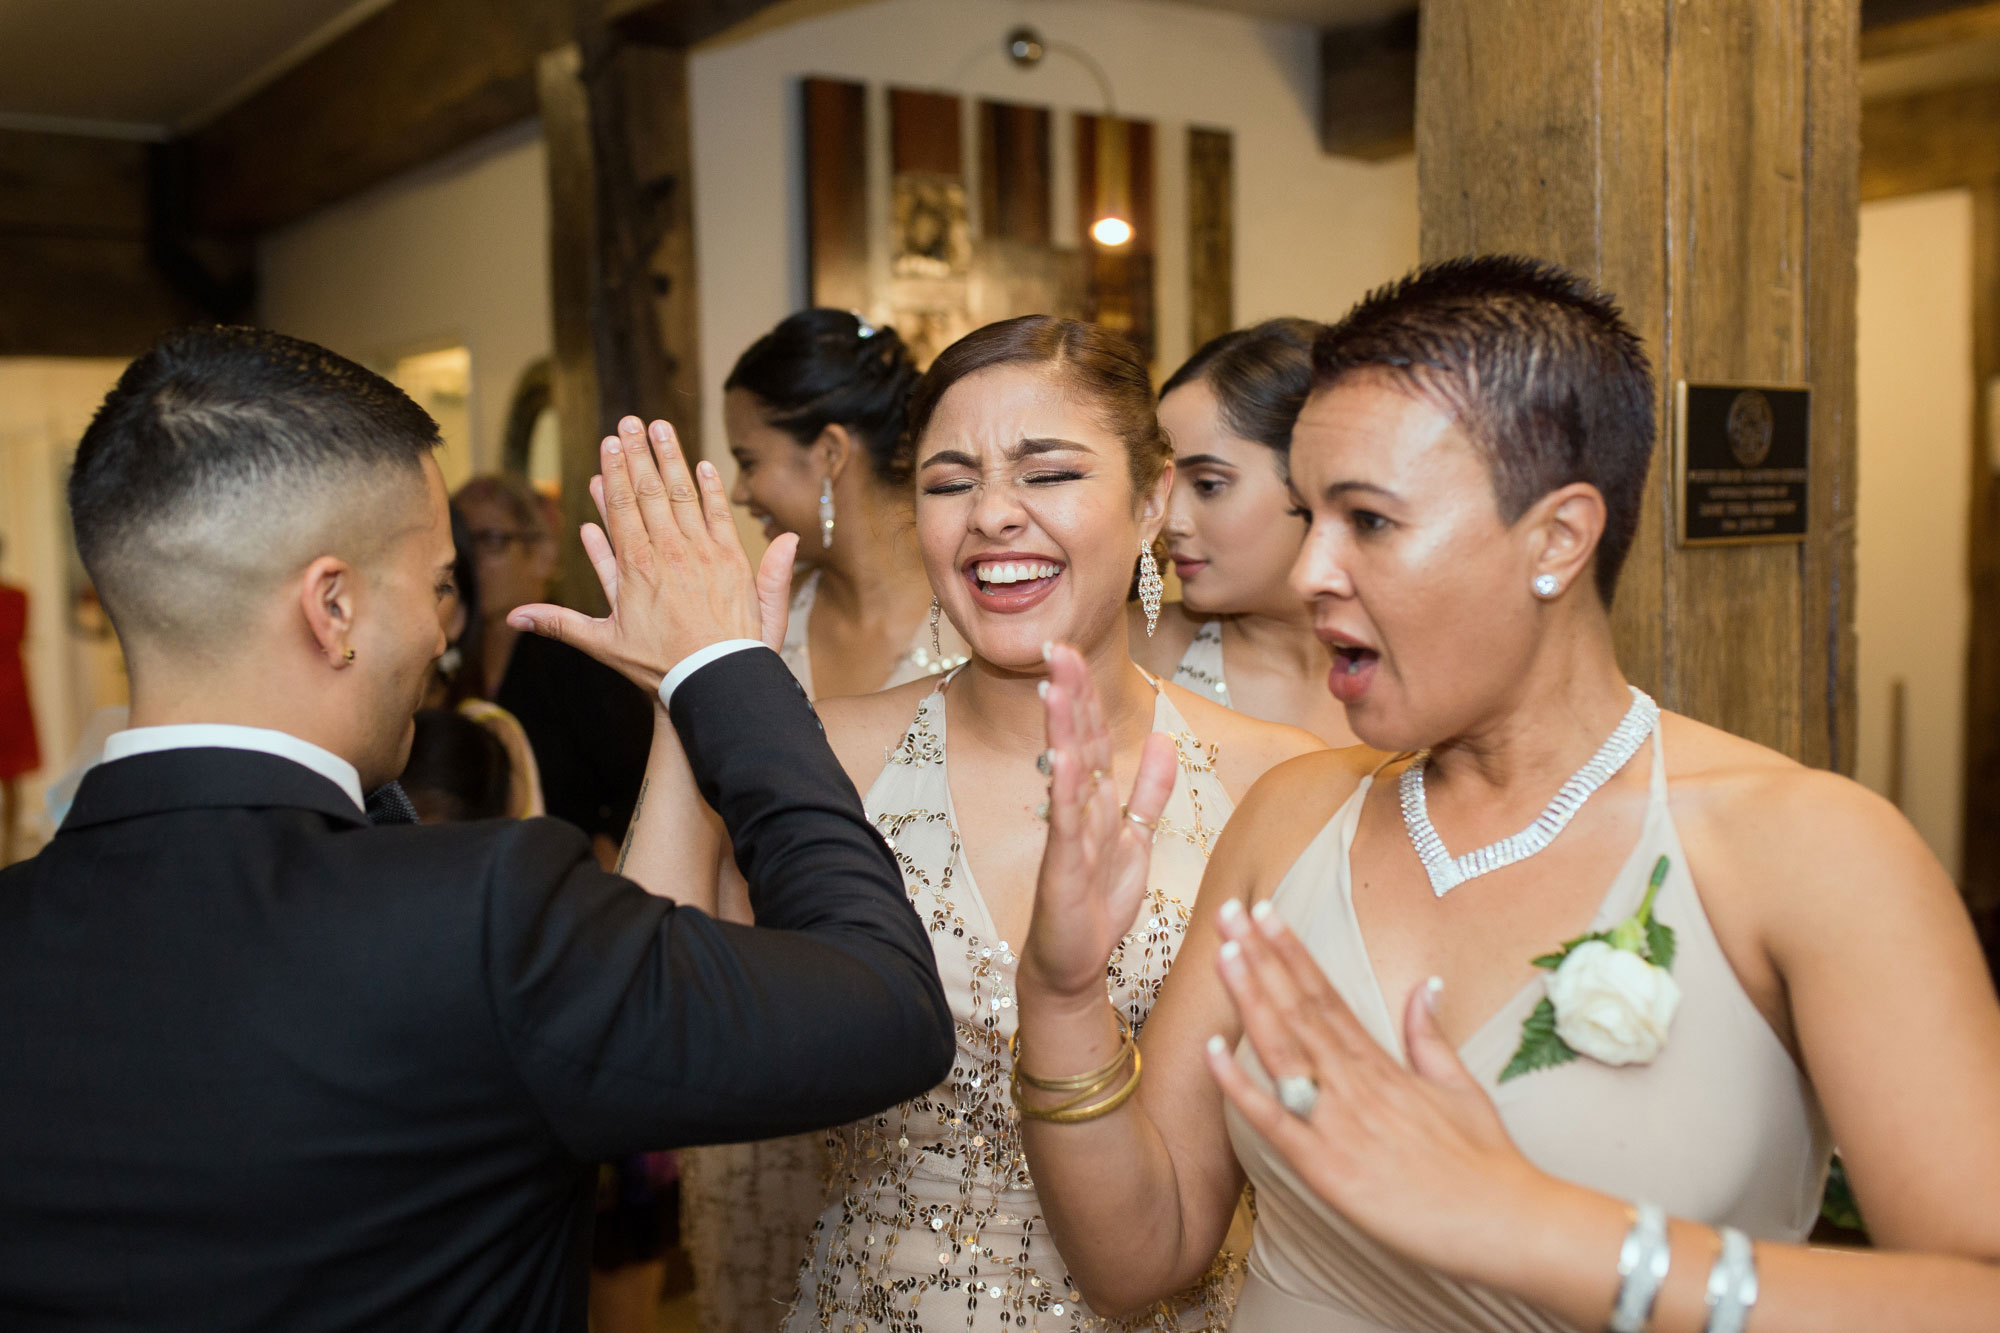 bridesmaid high five